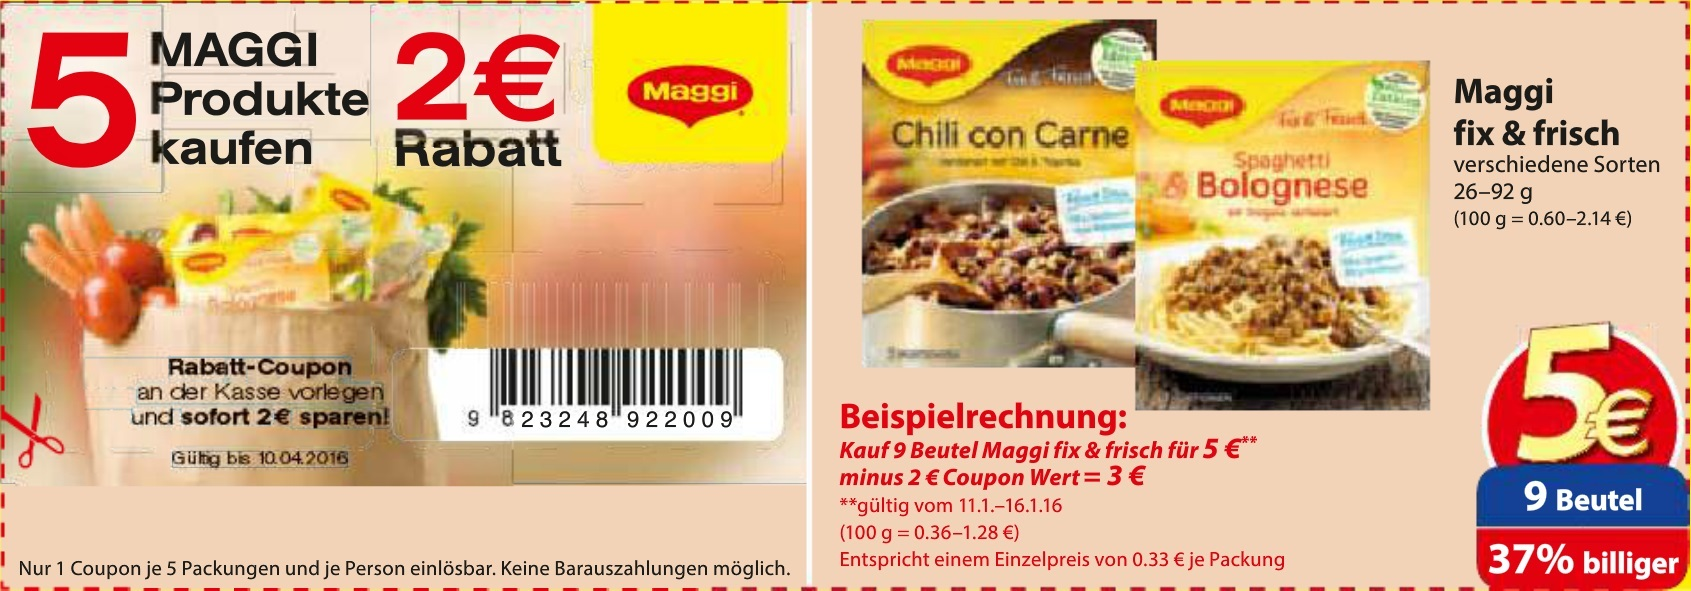 coupon44us1.jpg